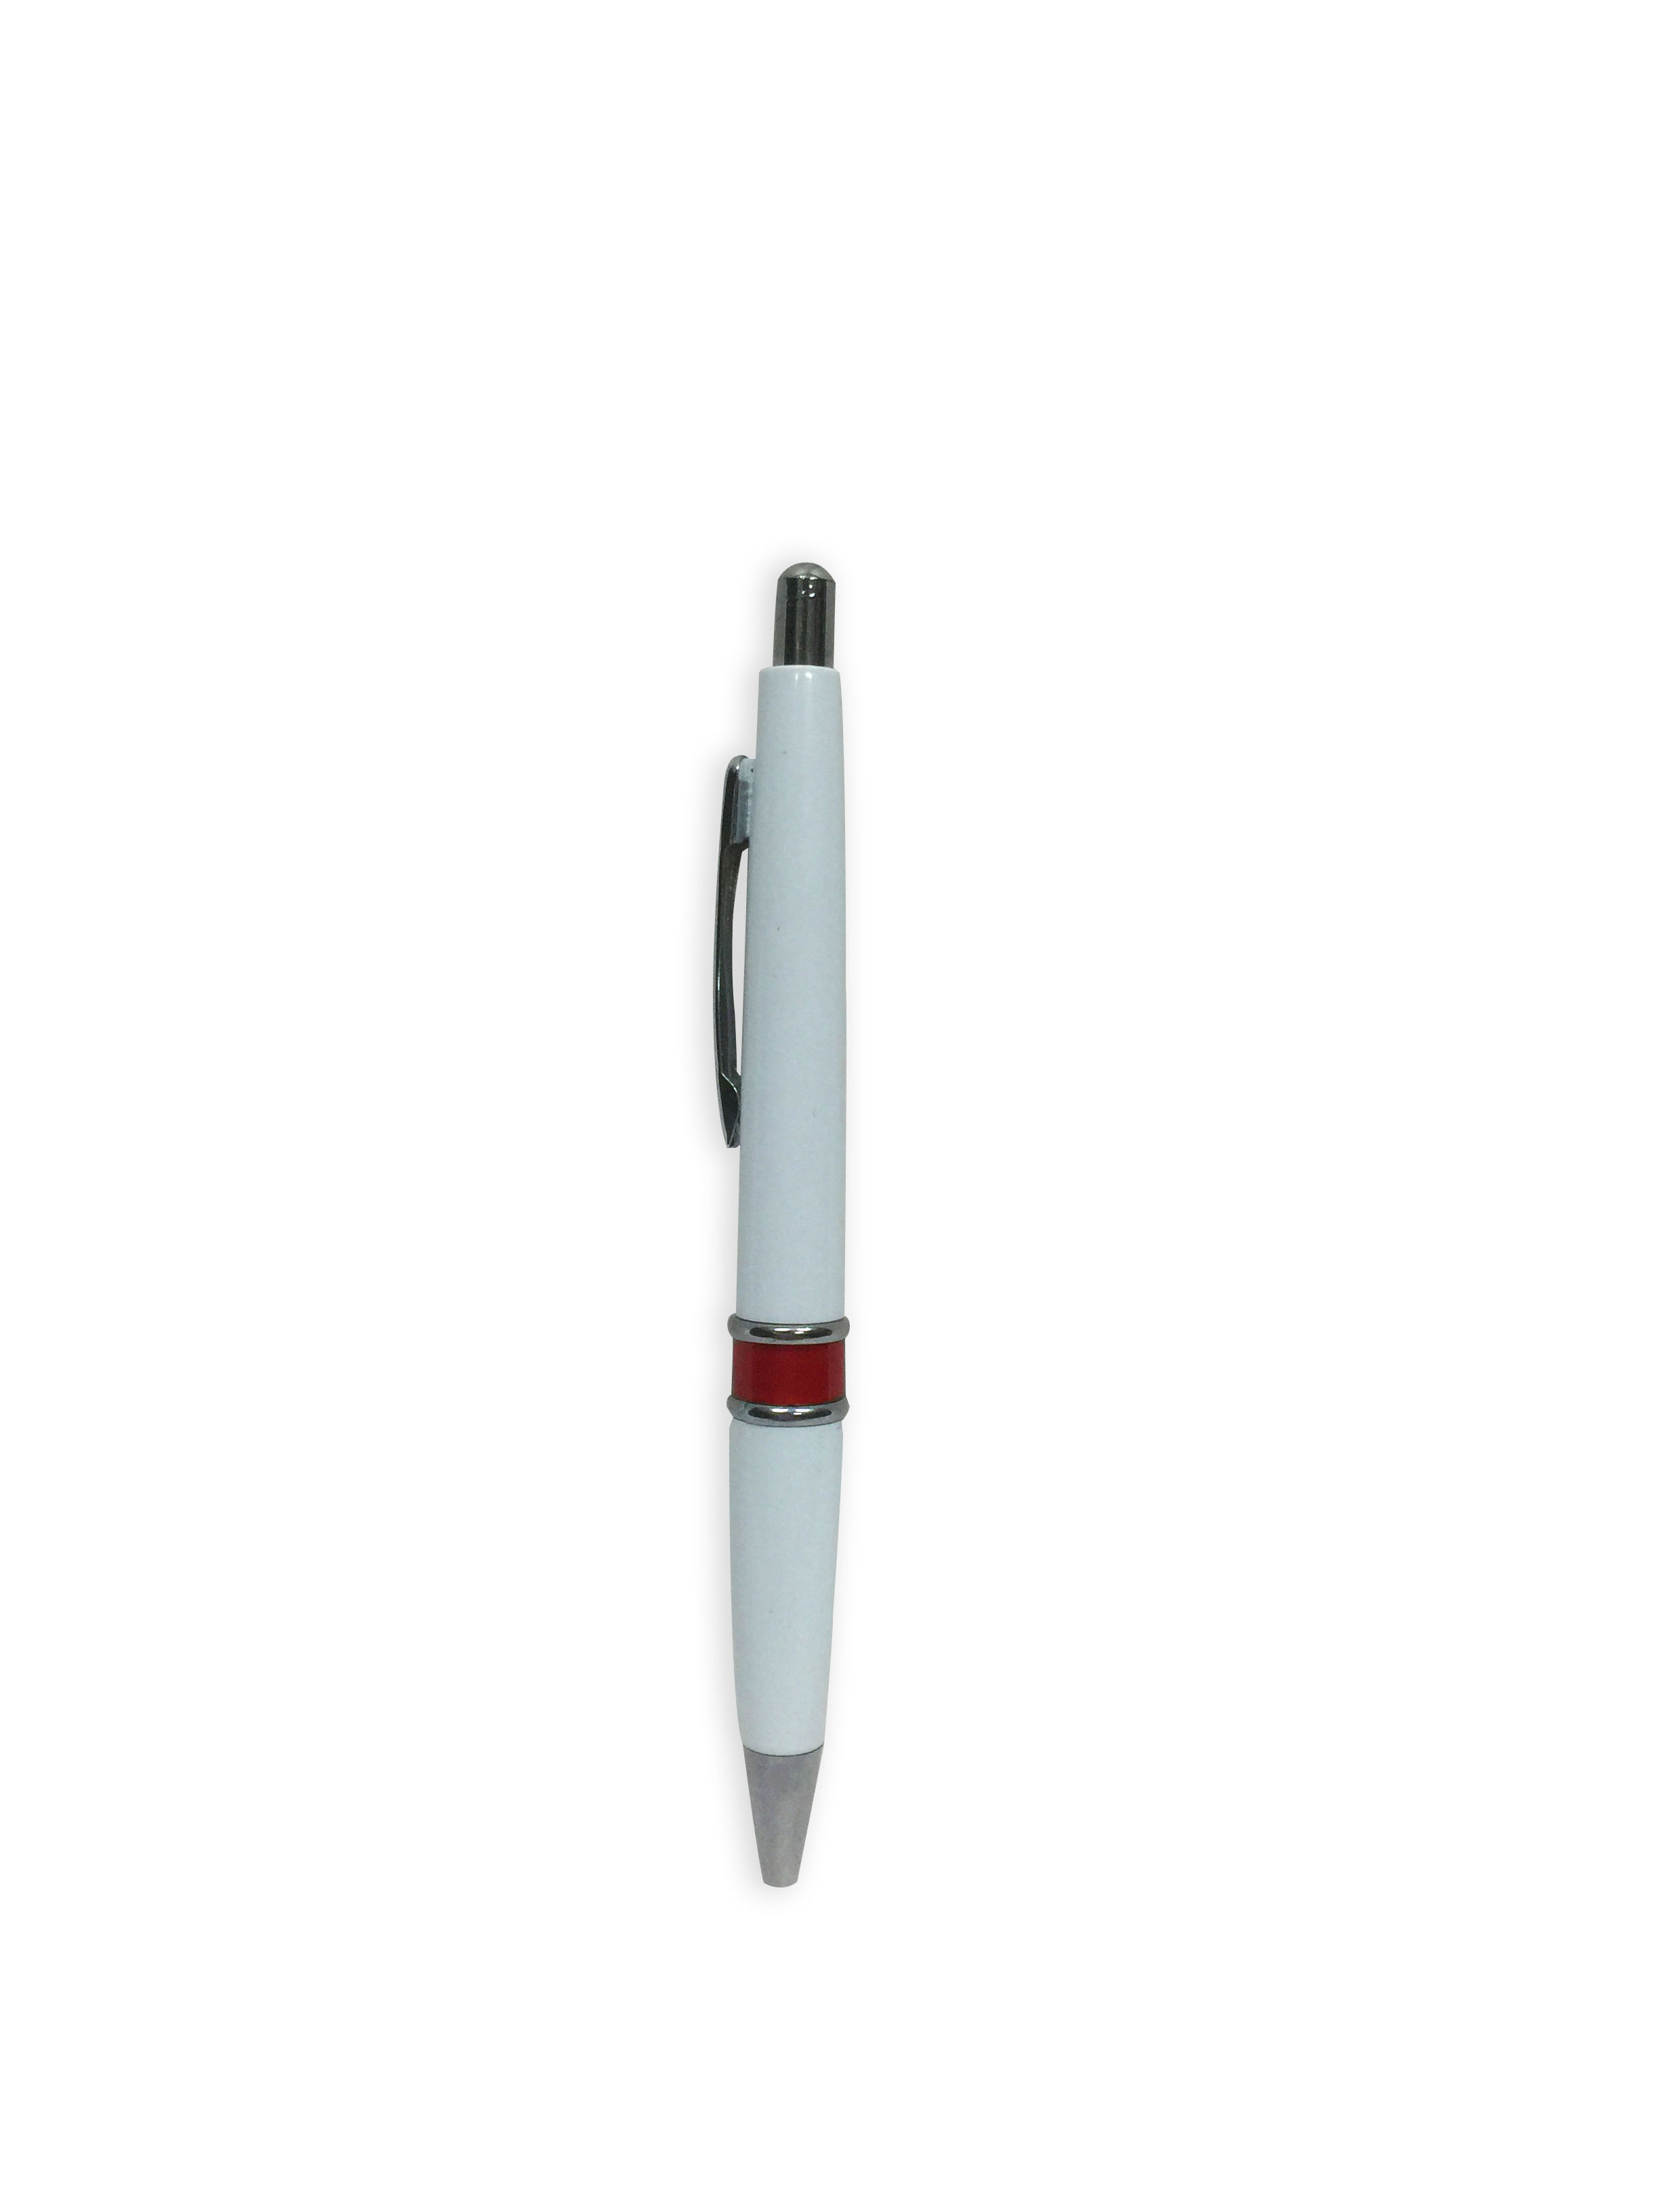 FG-20 Plastic Pen With Silver Cap